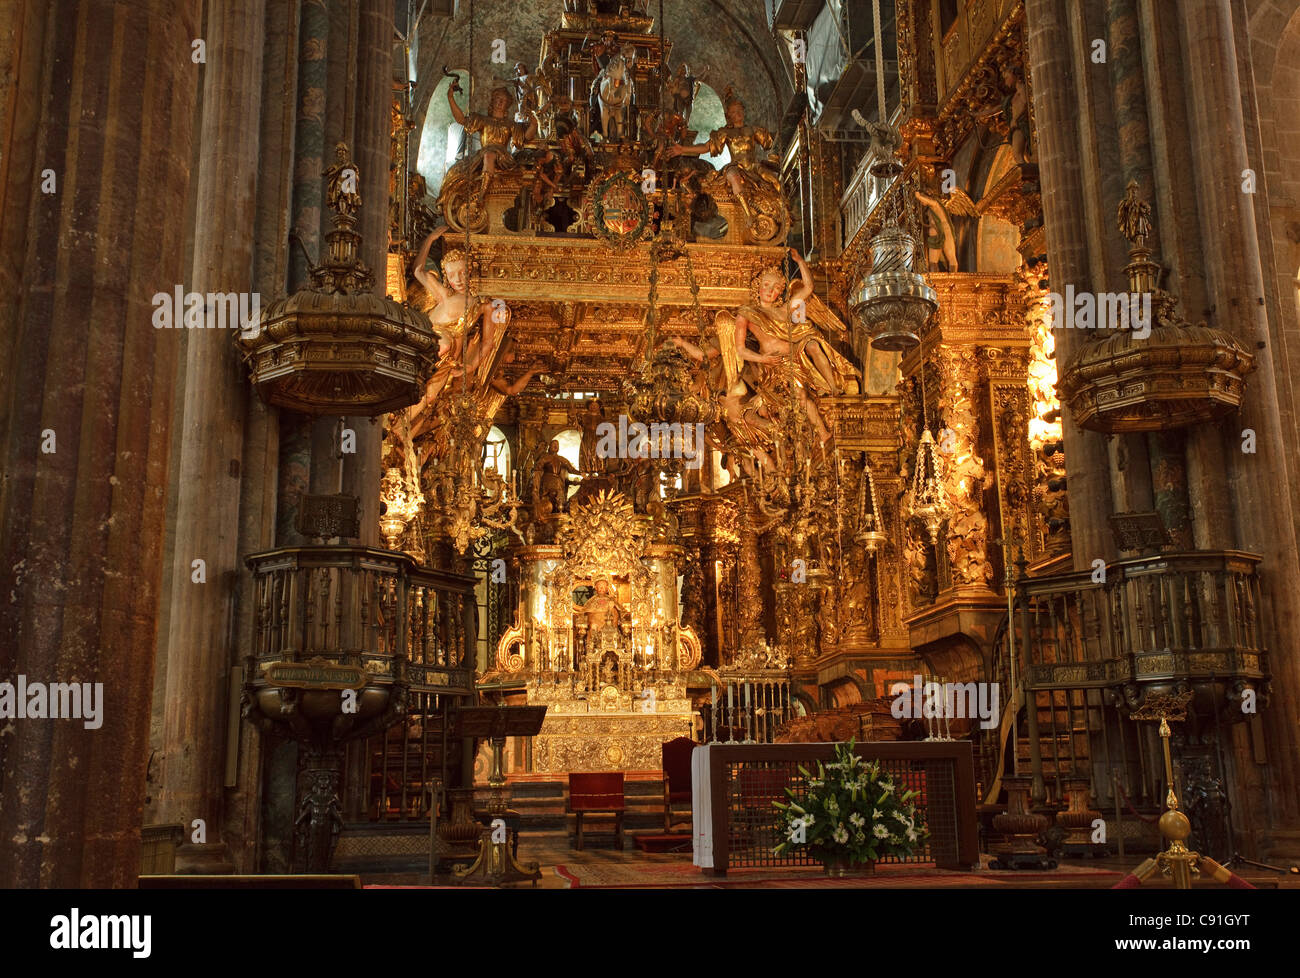 Interior view of the richly decorated cathedral Santiago de Compostela Province of La Coruna Galicia Northern Spain - Stock Image